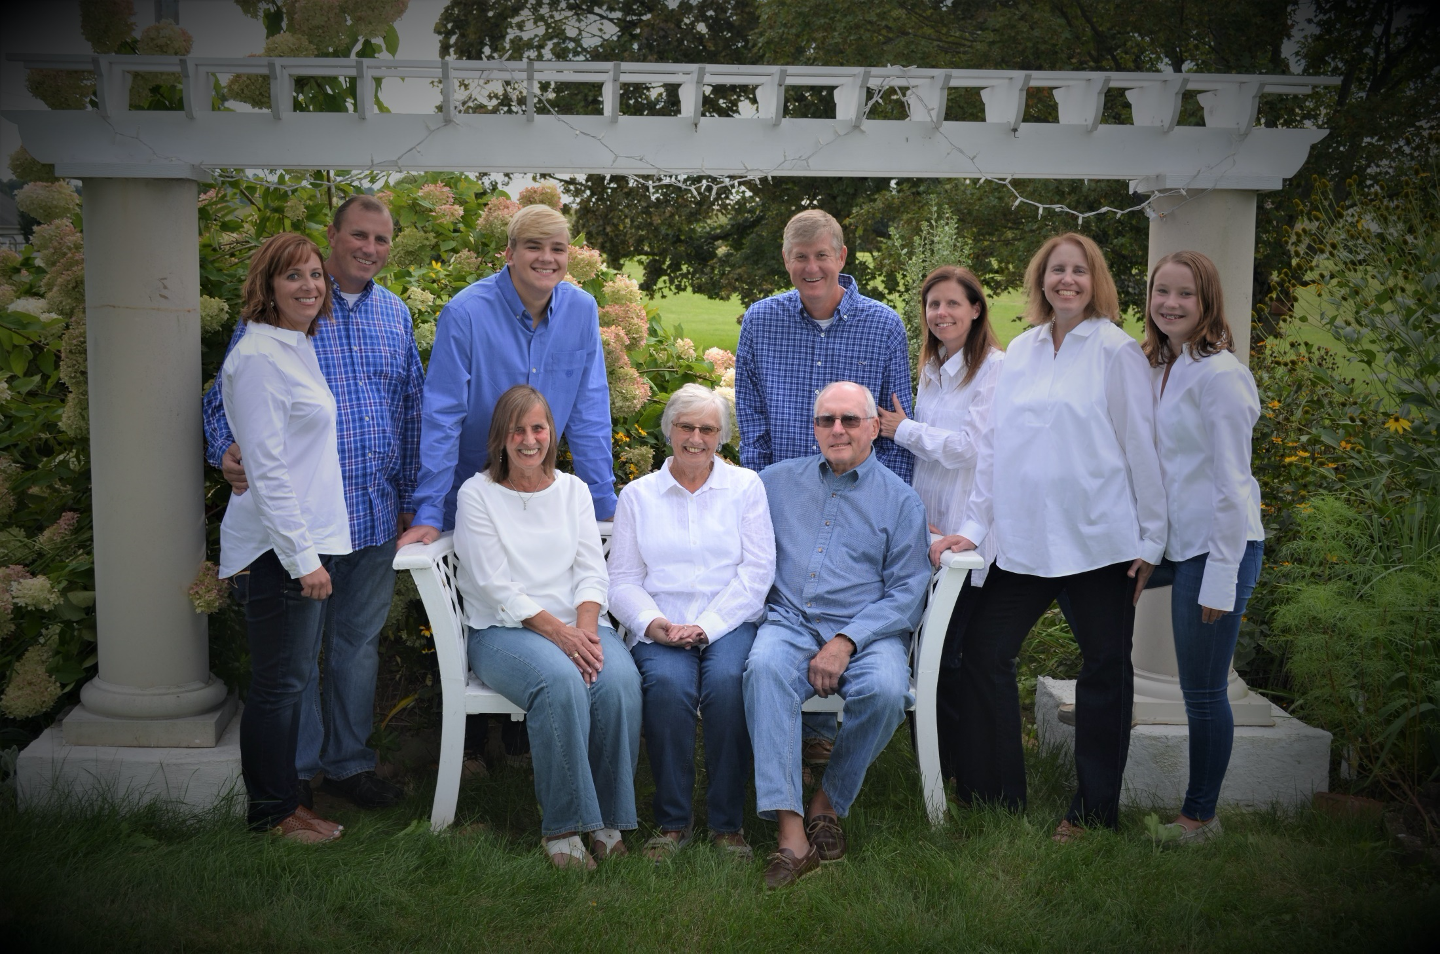 Portrait of family of ten wearing blue and white clothing, outdoors under a pergola.